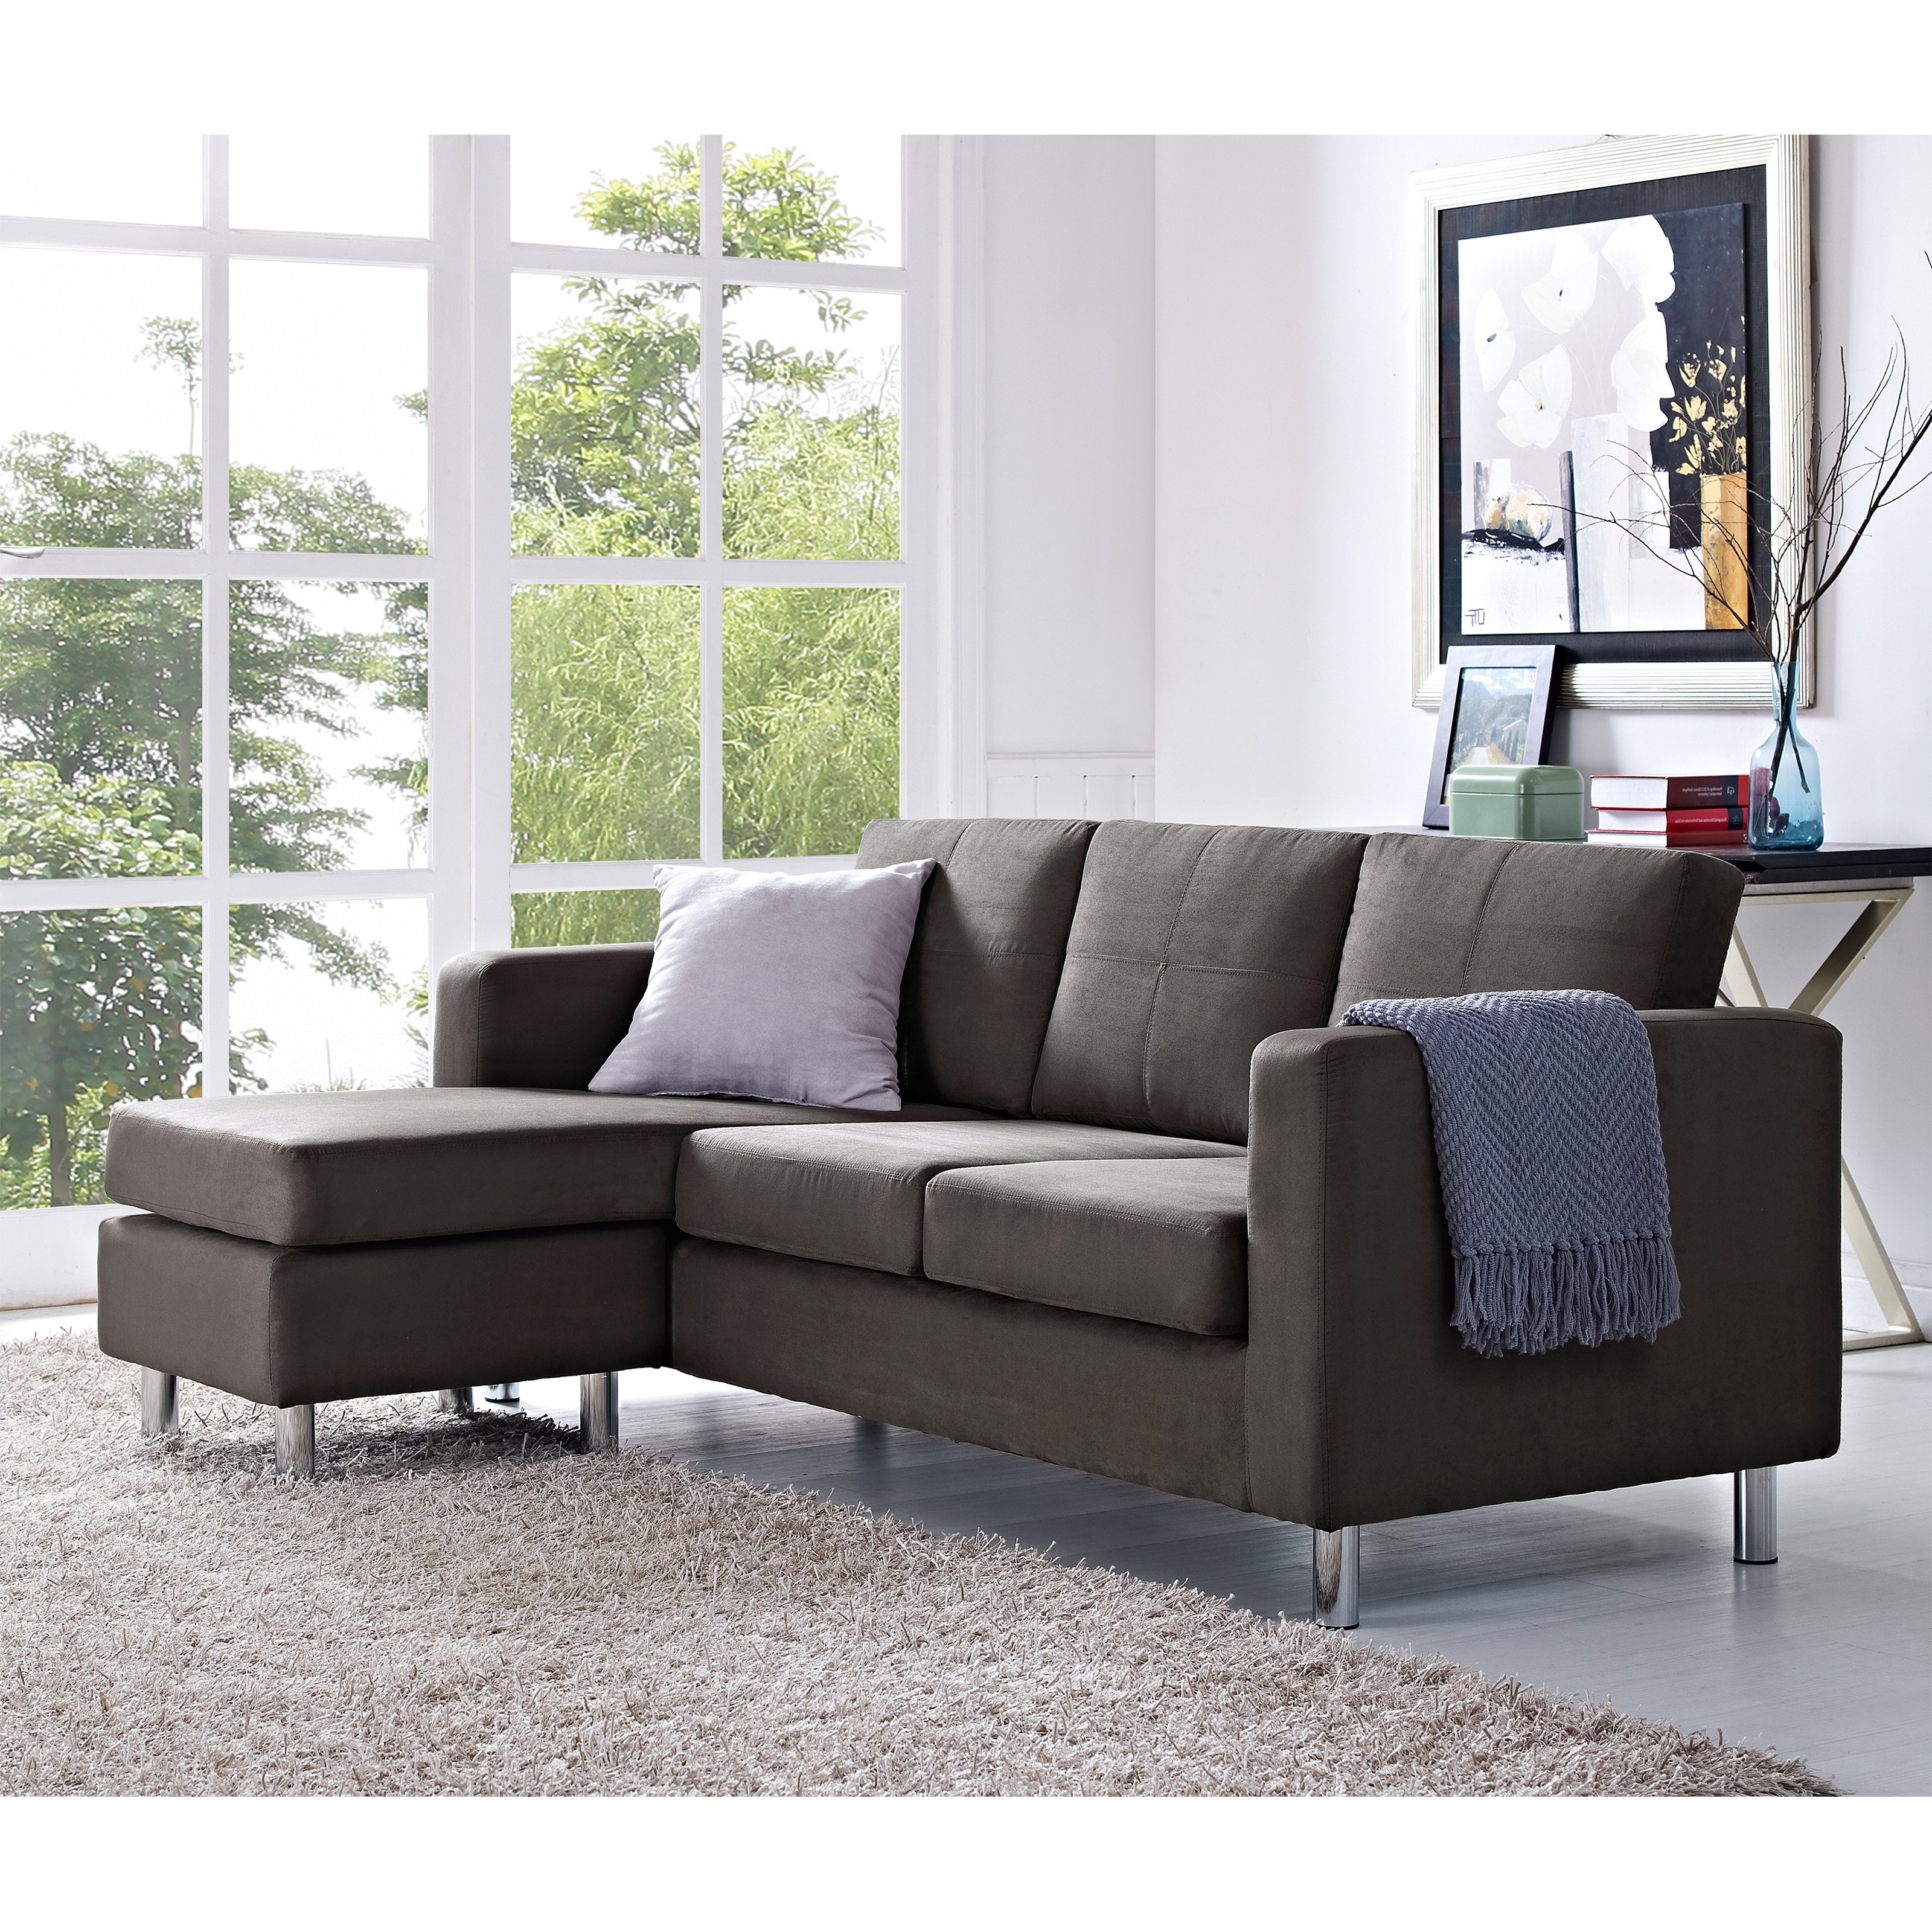 2017 Small Sectional Sofas For Small Spaces With Dorel Living Small Spaces Configurable Sectional Sofa (View 7 of 15)